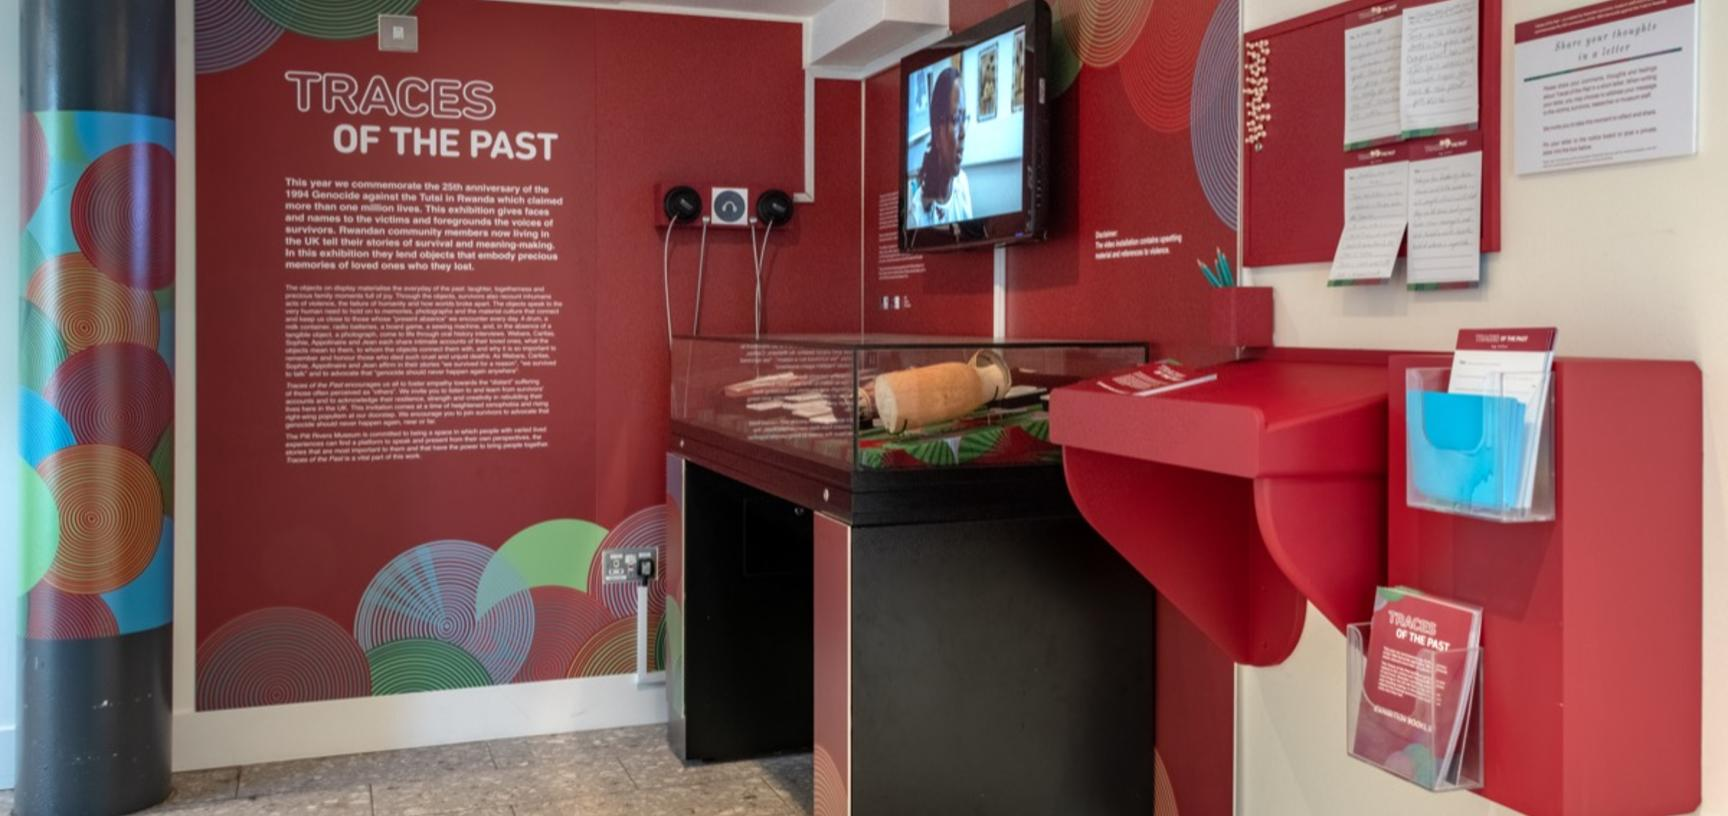 'Traces of the Past' exhibition panel and case